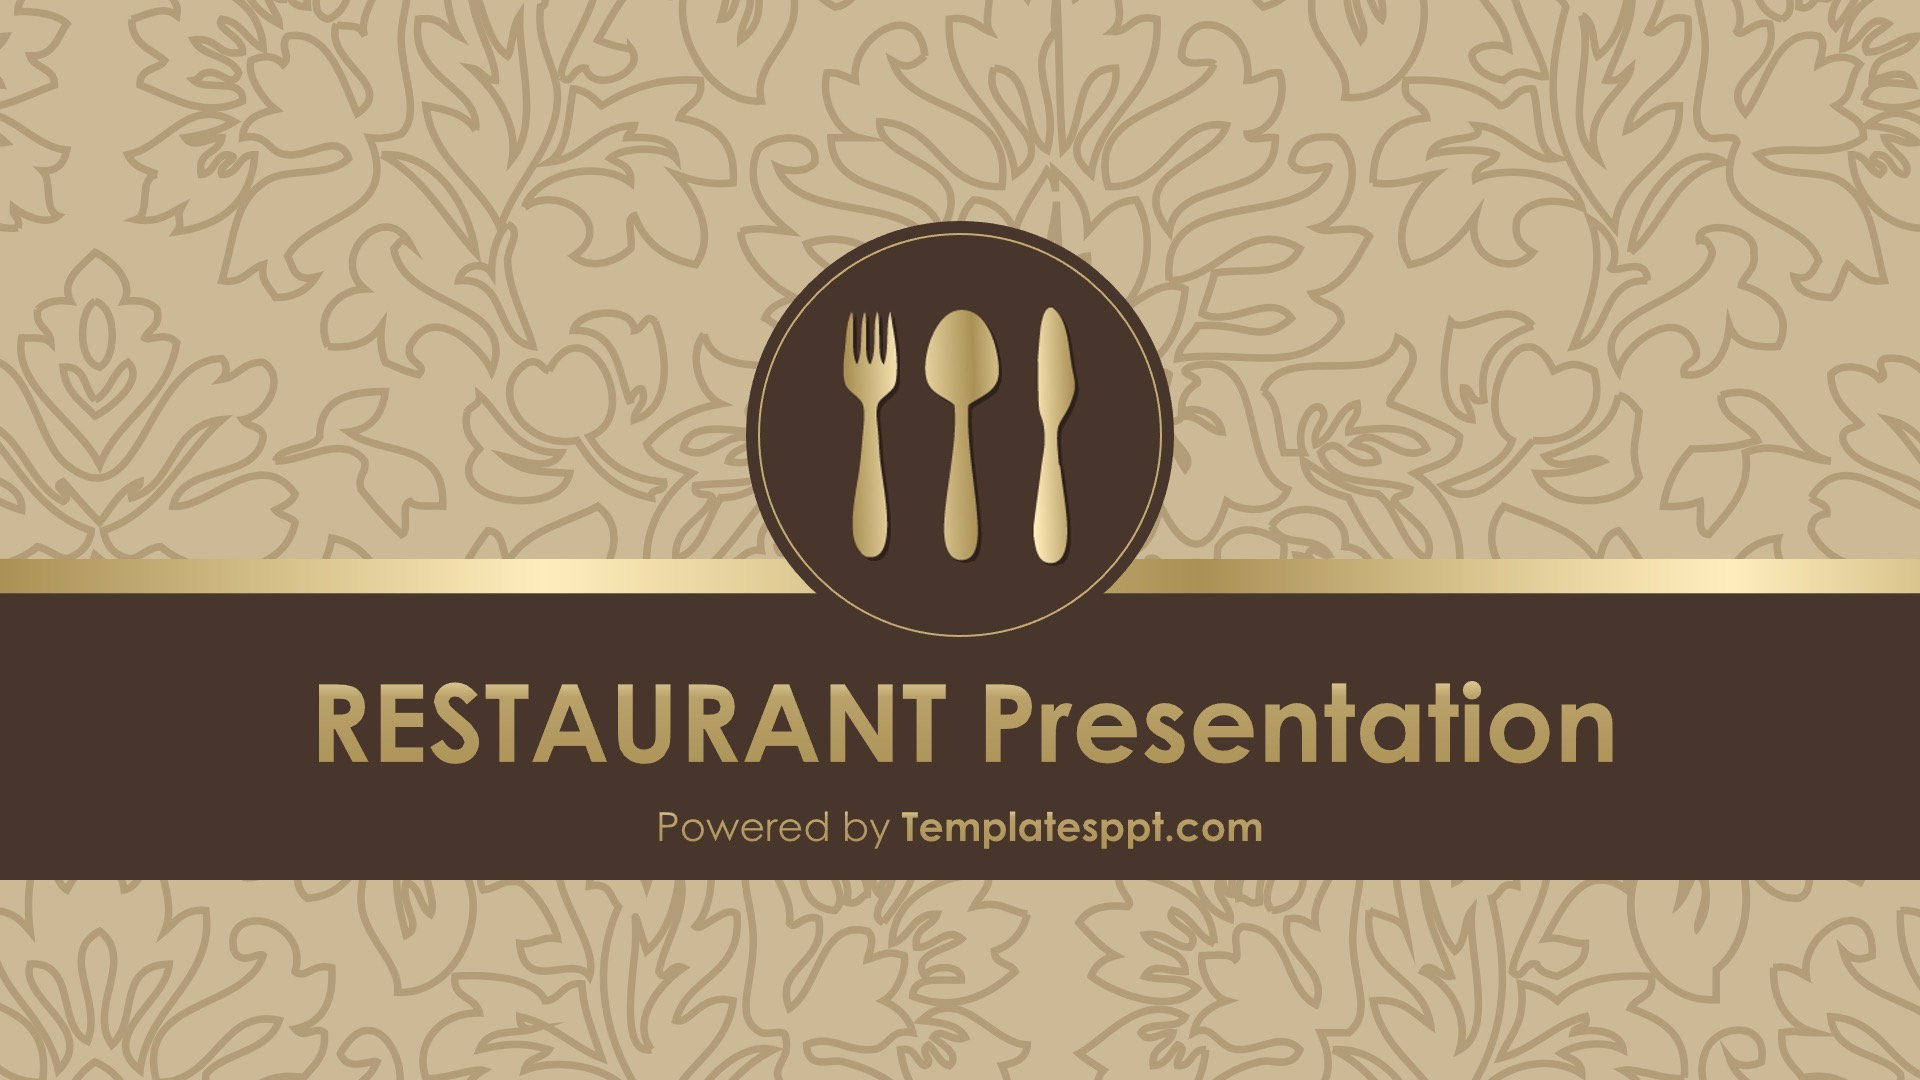 30+ Free Restaurant Templates in Google Docs, Slides, and Word (Best in 2021)